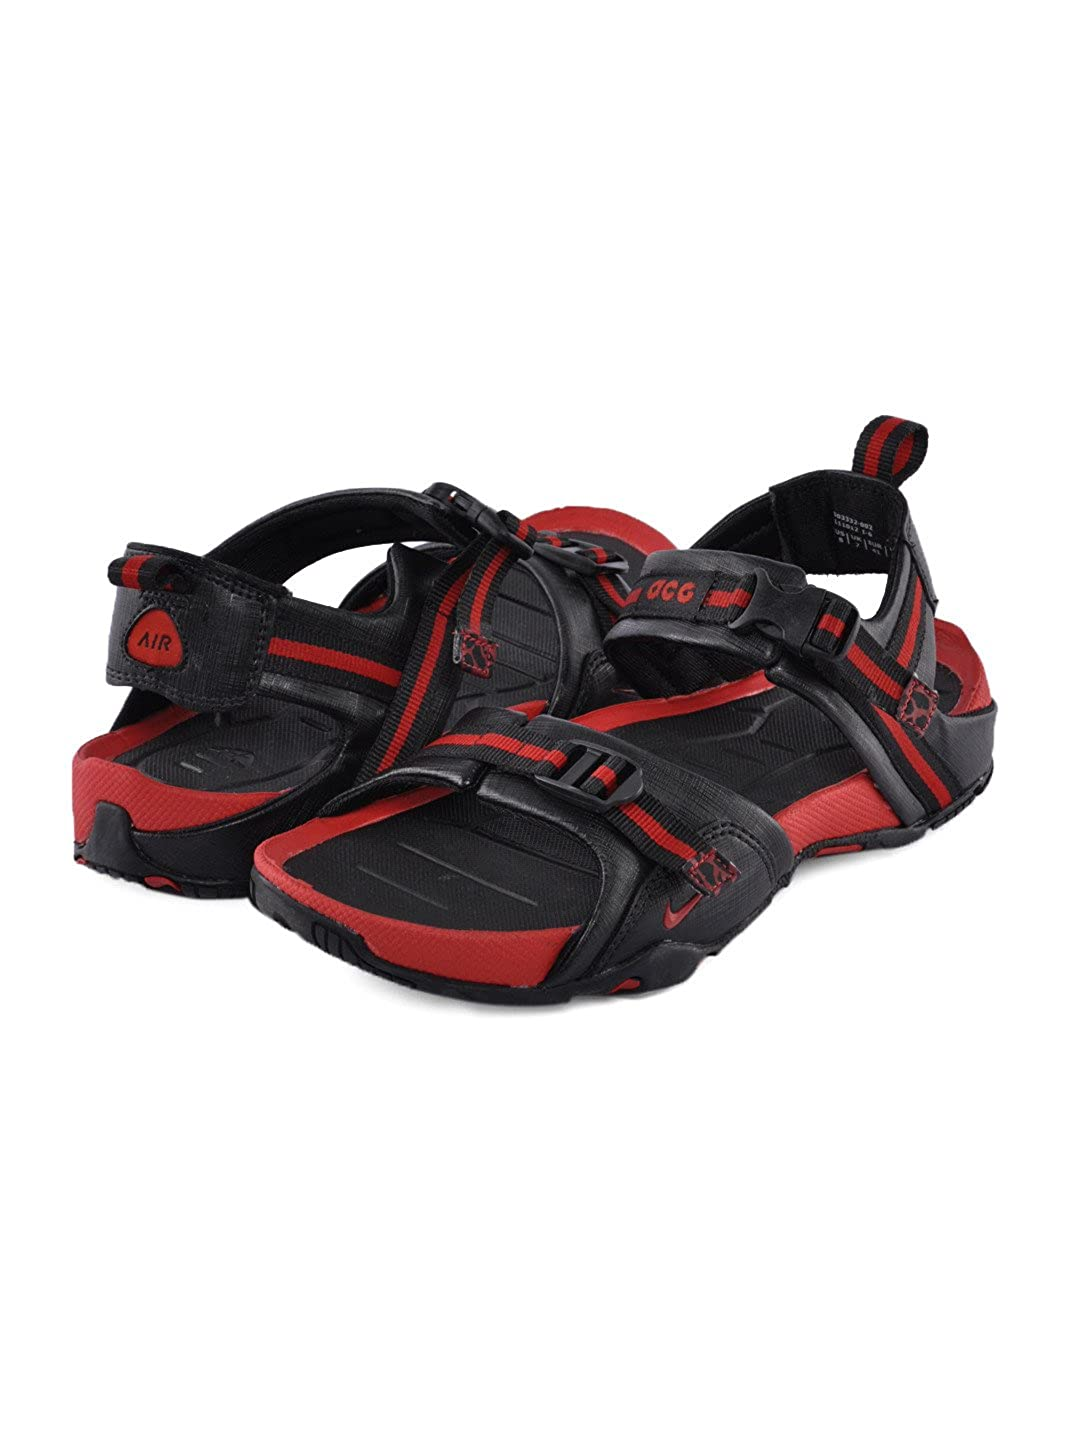 nike air embark floaters on sale on amazon account 182c2bbb3